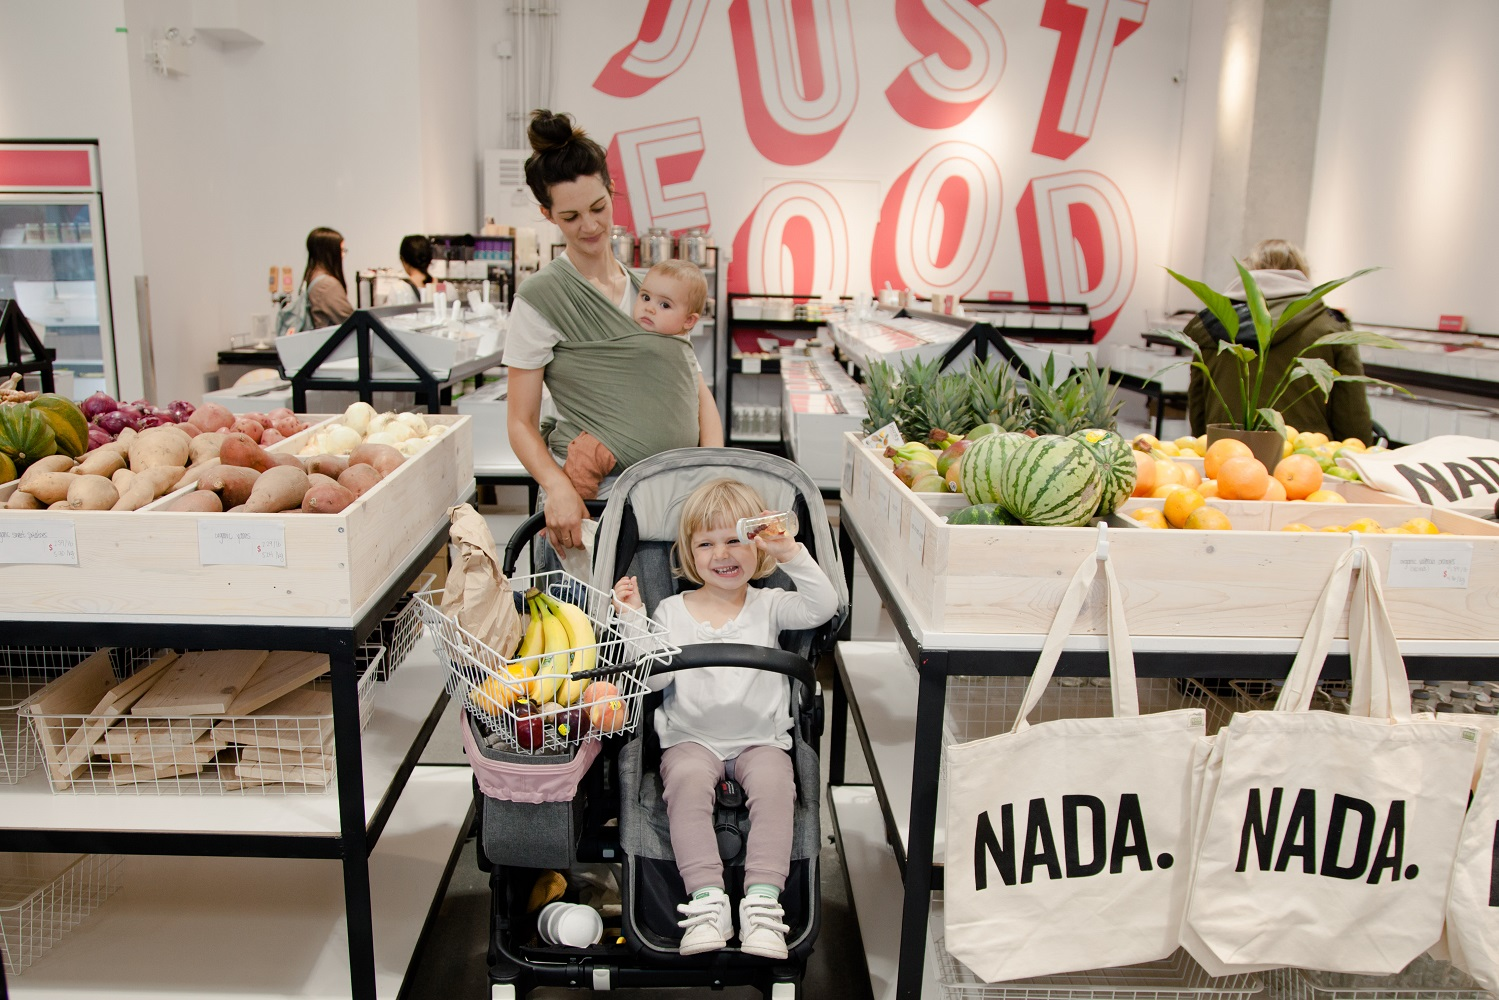 Nada grocery zero waste lifestyle